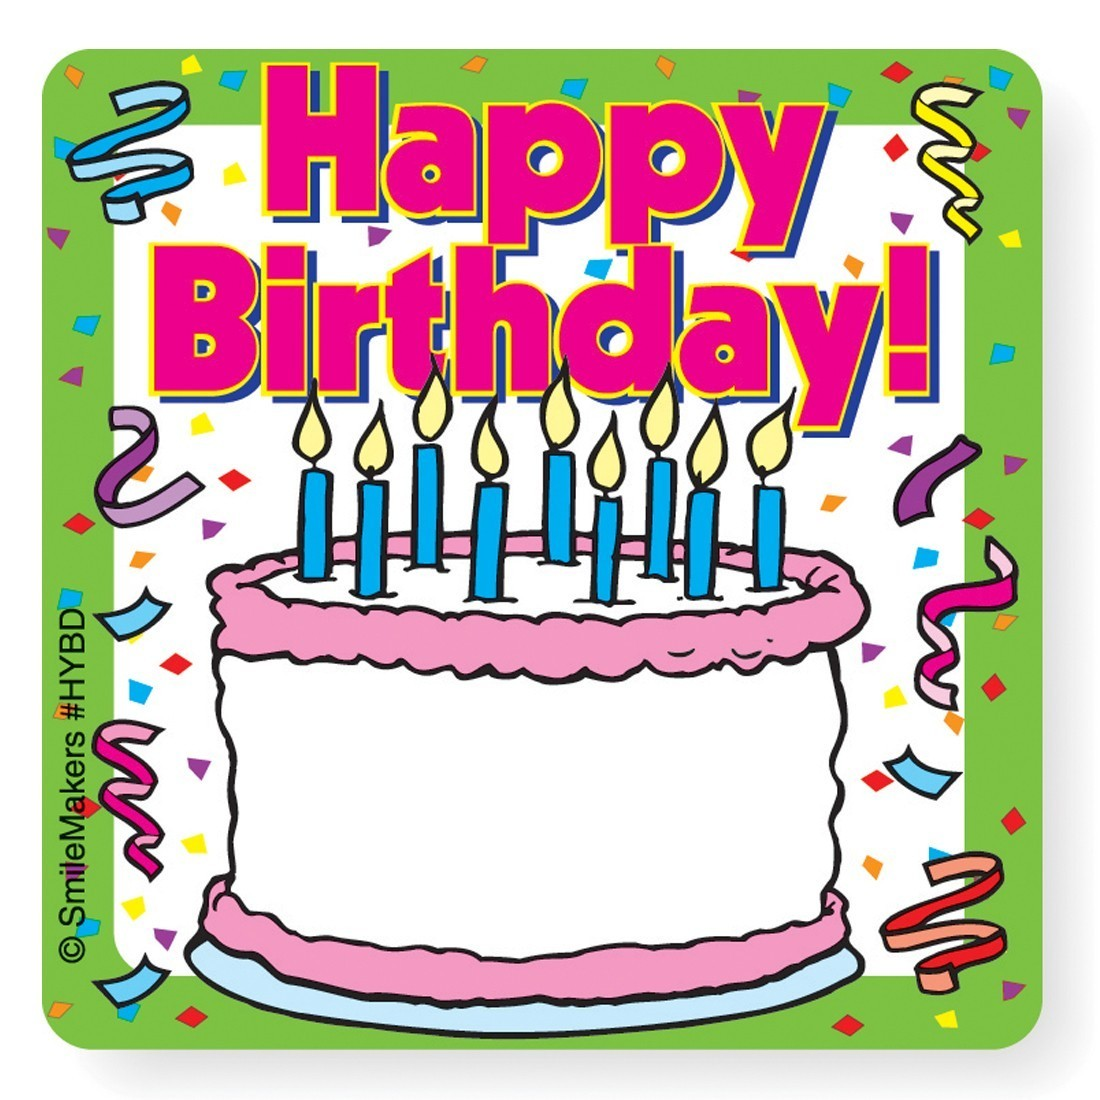 Happy birthday your name stickers image slider image 0